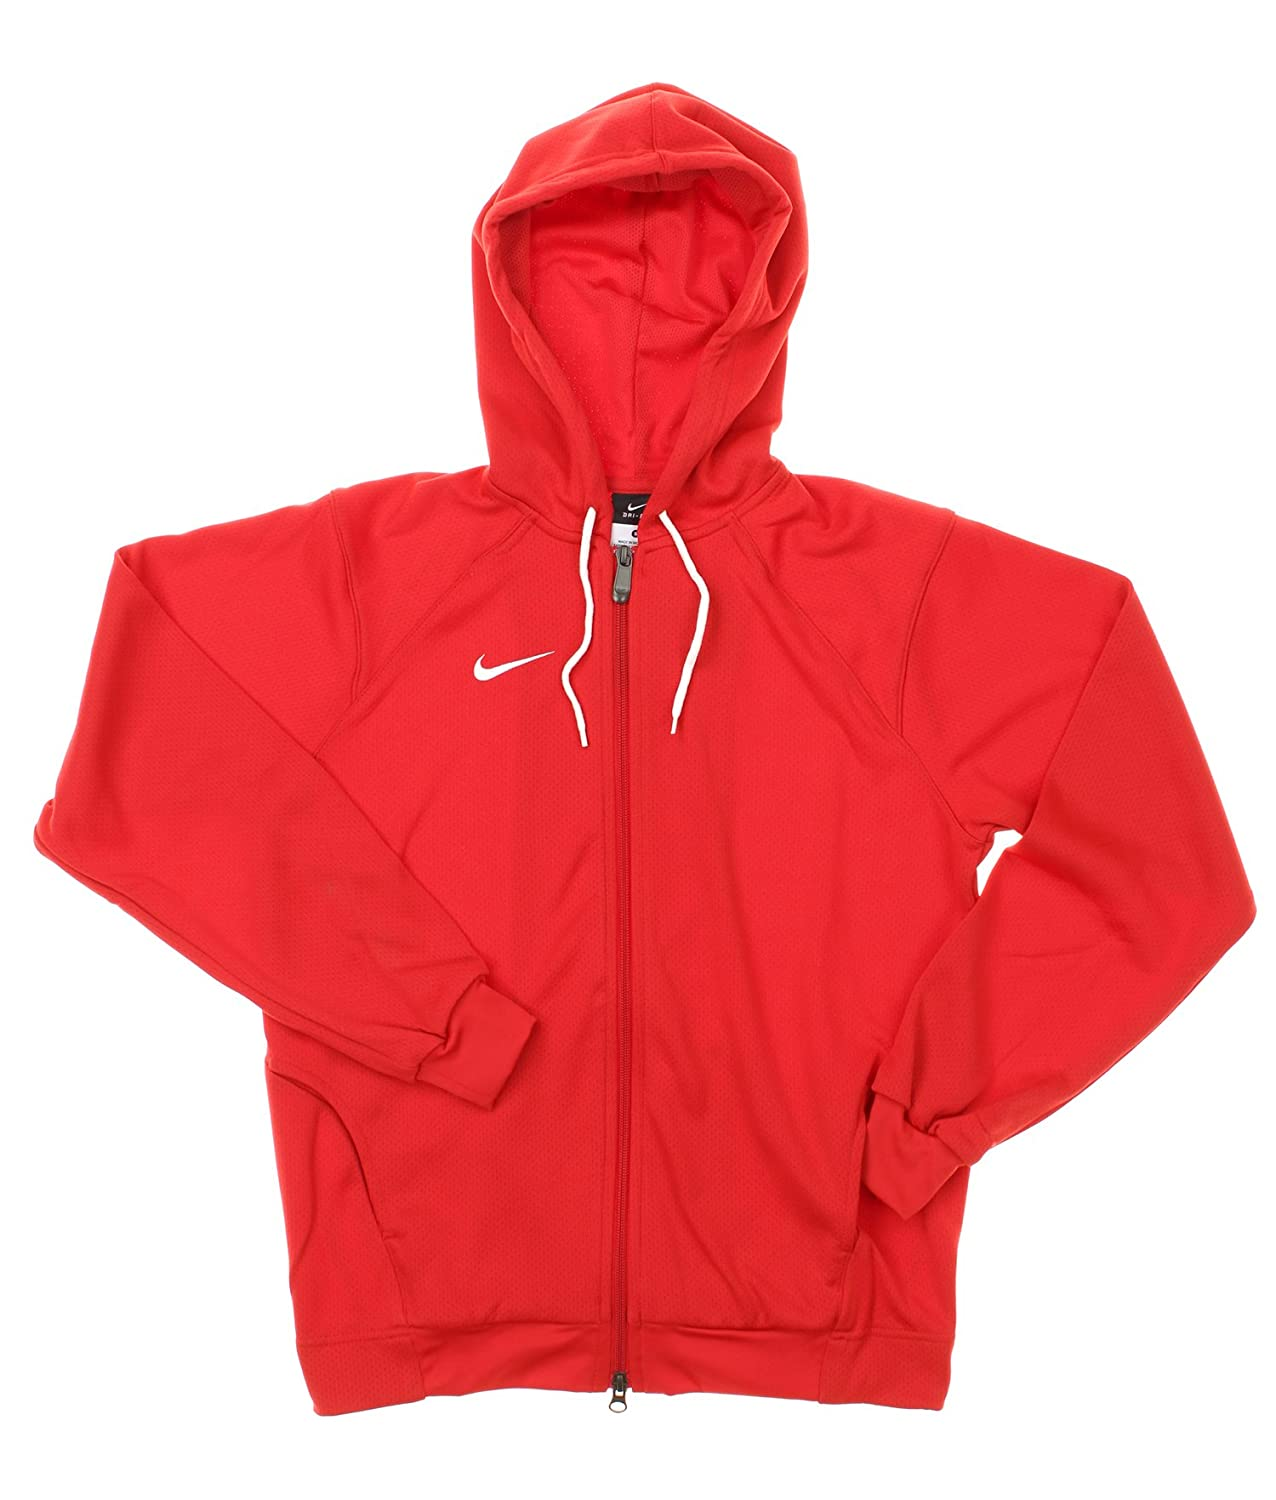 Nike Womens Full Zip Road Trip Jacket Hoodie